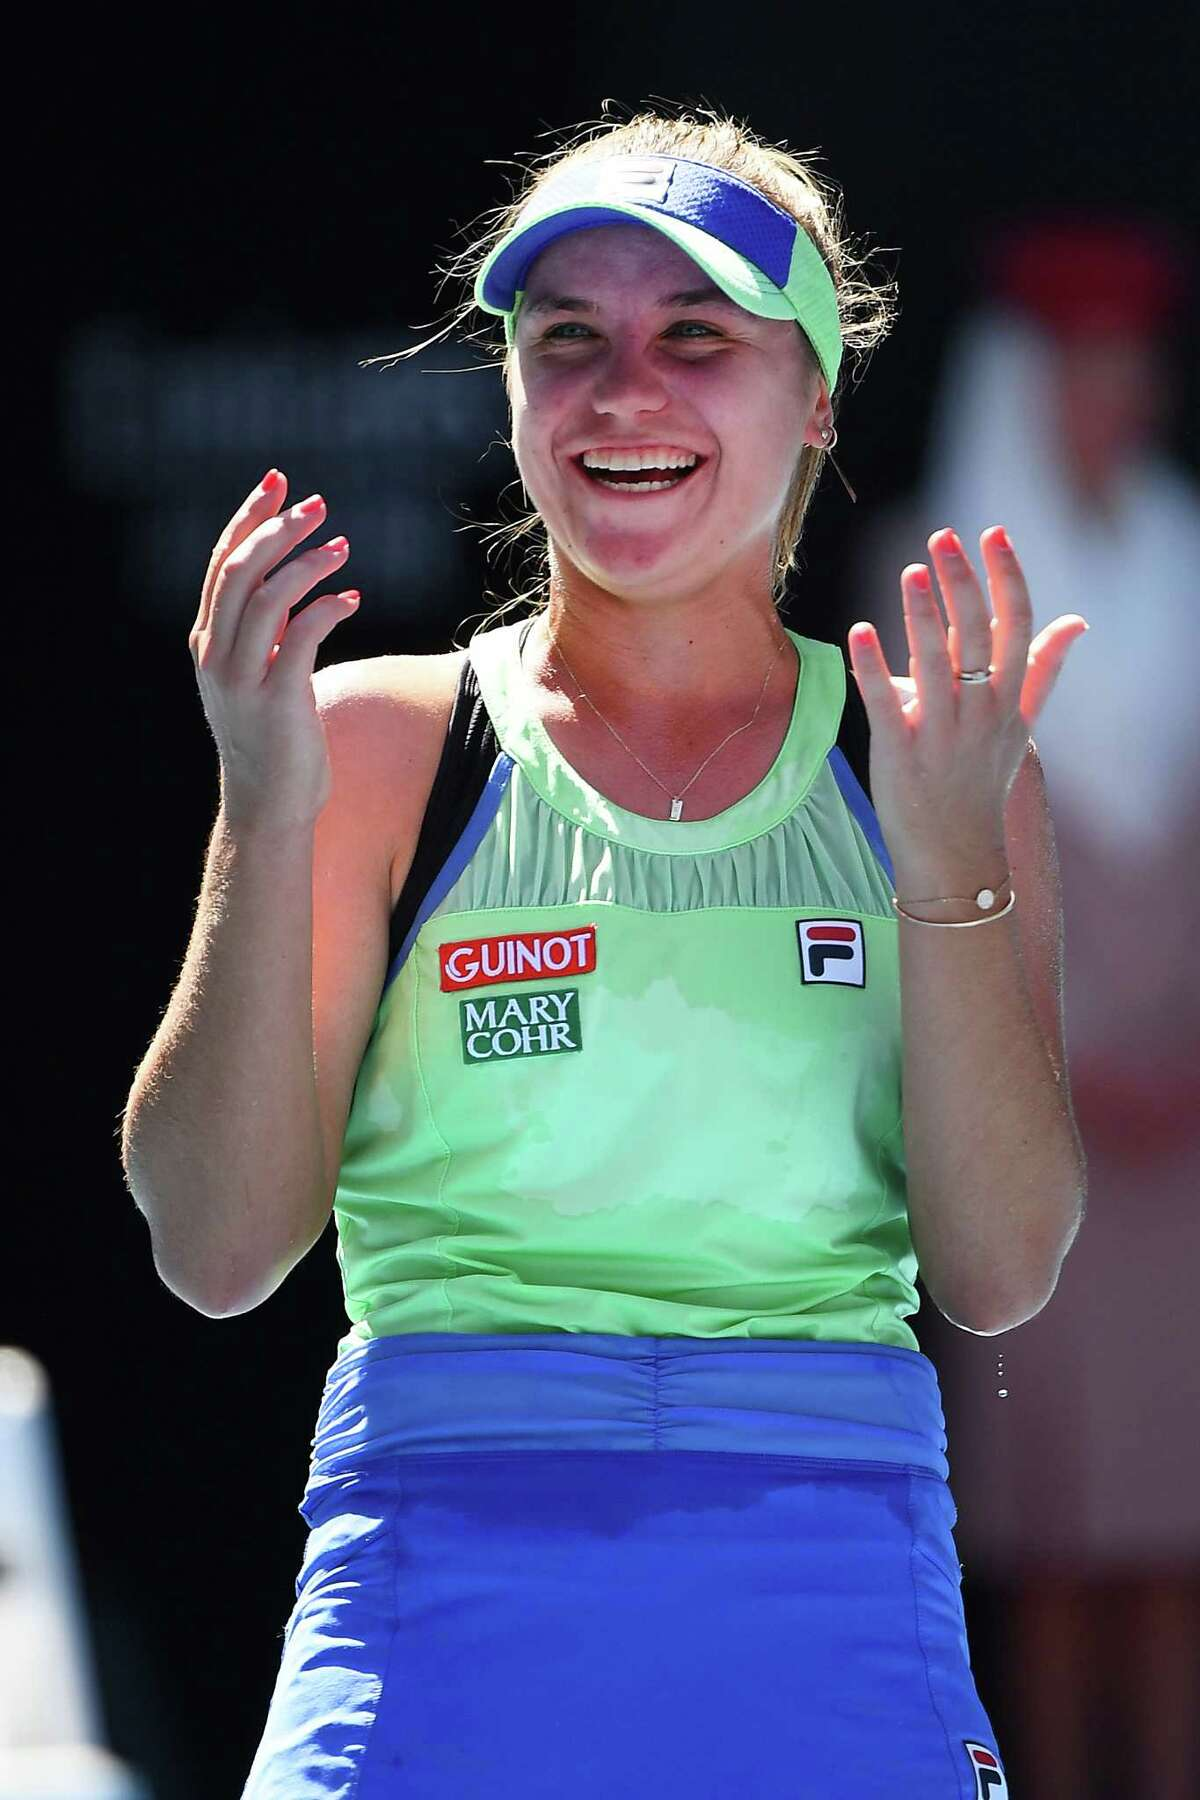 MELBOURNE, AUSTRALIA - JANUARY 30: Sofia Kenin of the United States celebrates after winning her Women's Singles Semifinal match against Ashleigh Barty of Australia on day eleven of the 2020 Australian Open at Melbourne Park on January 30, 2020 in Melbourne, Australia. (Photo by Quinn Rooney/Getty Images)